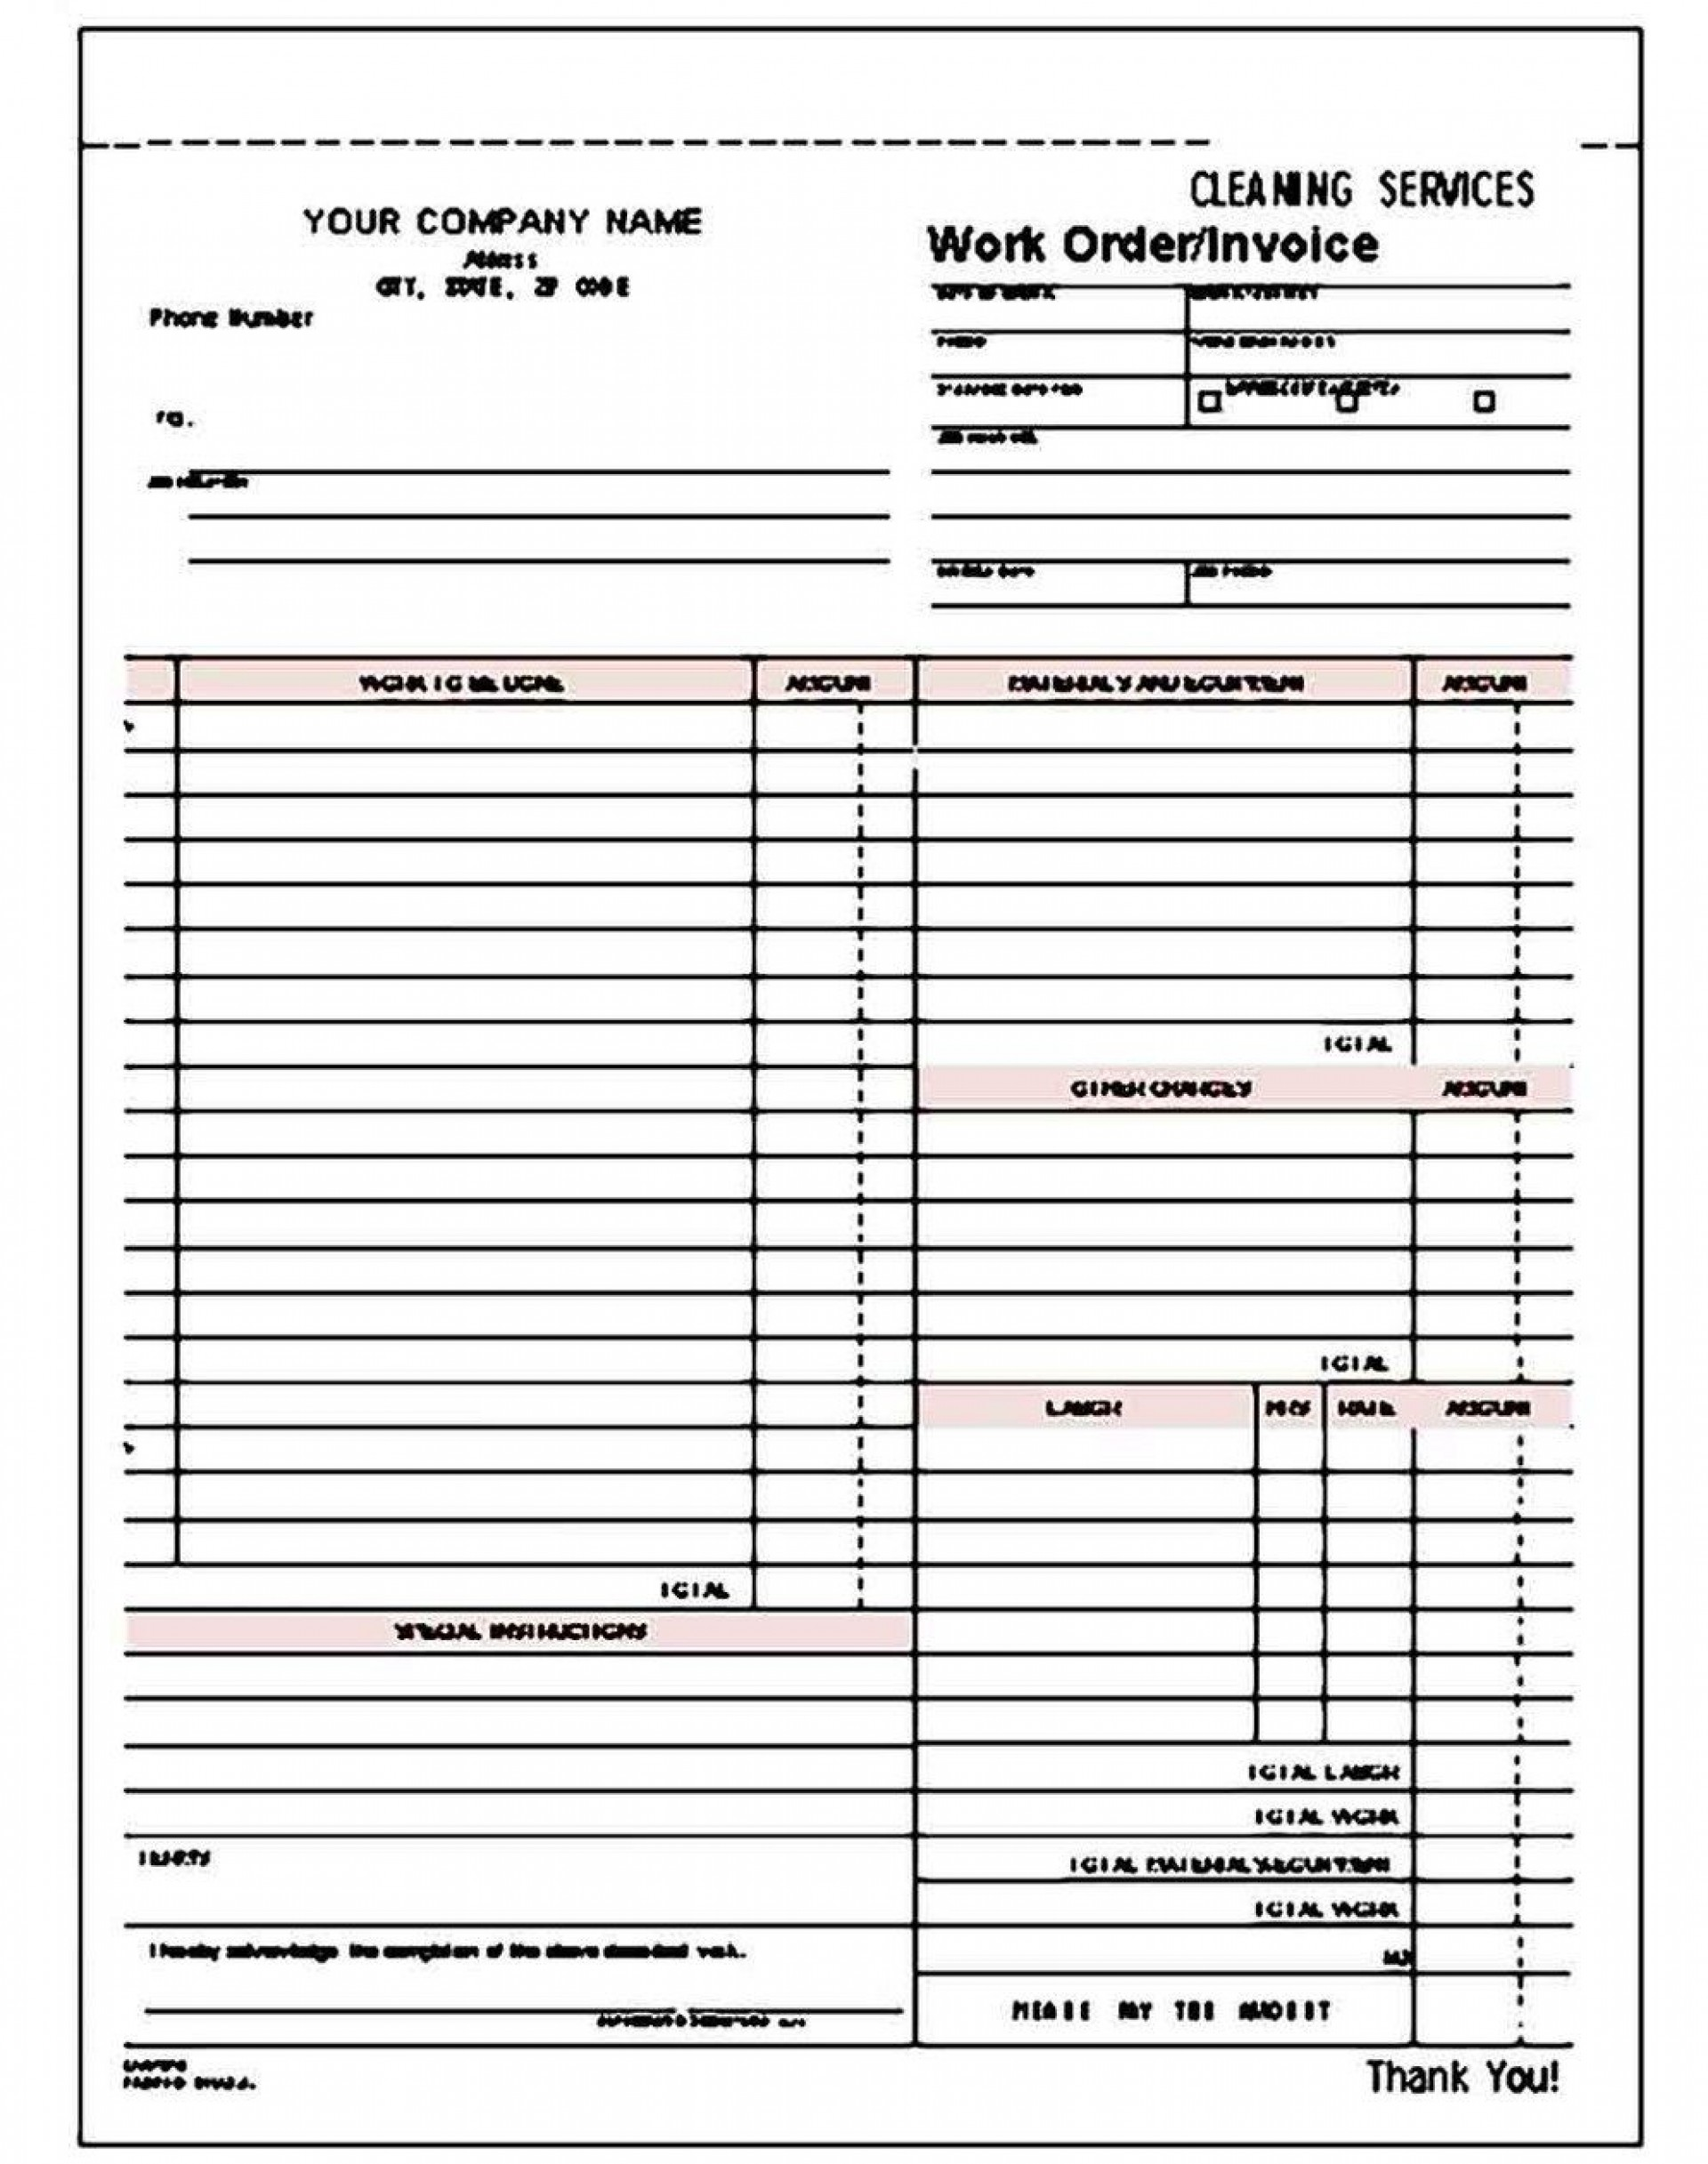 009 Staggering Cleaning Service Invoice Template Design  Uk1920